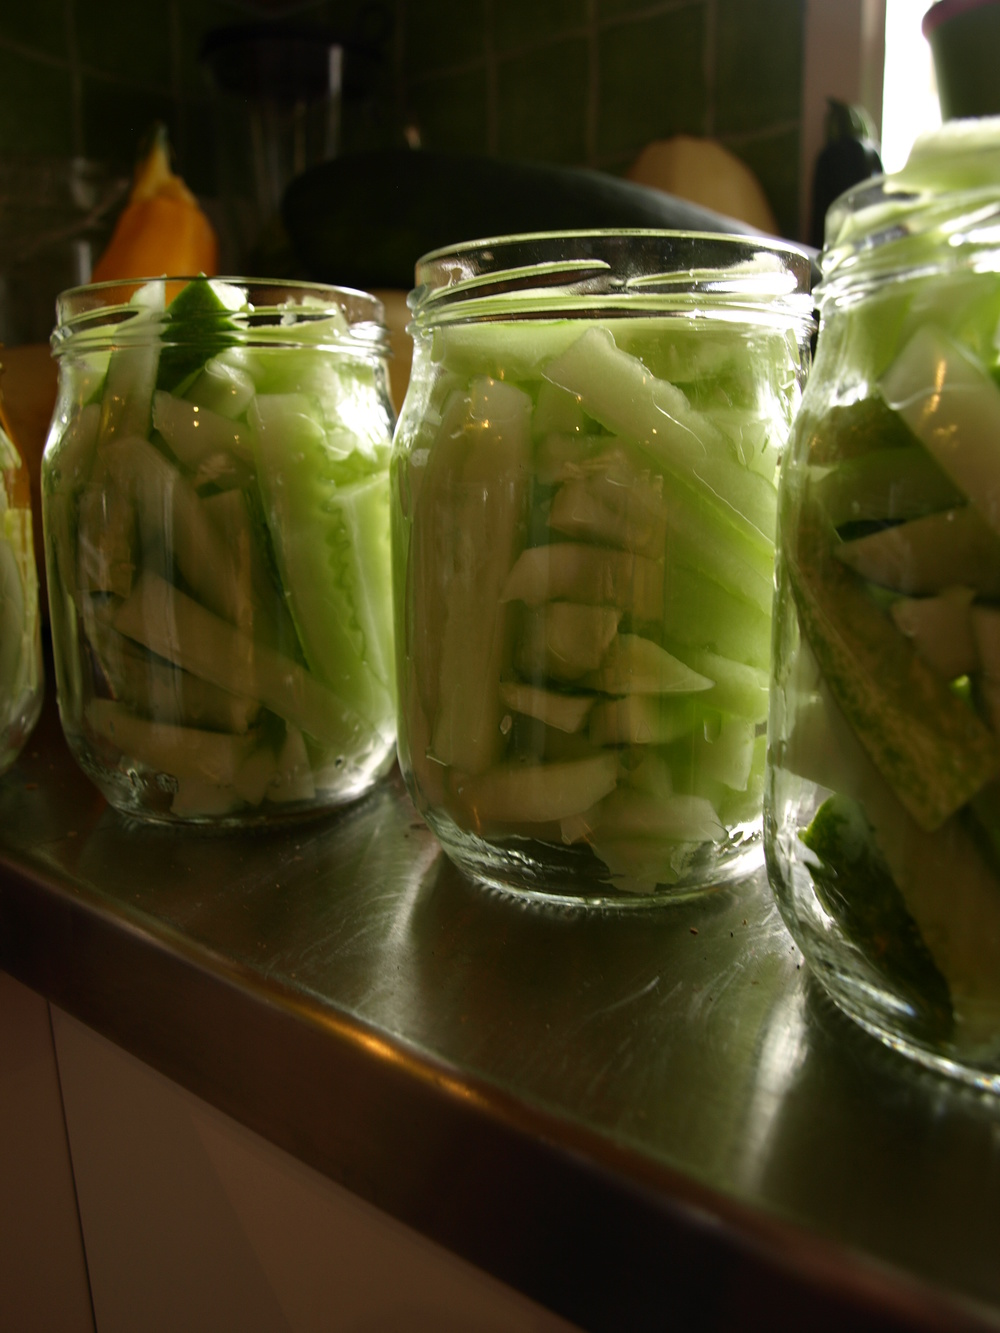 Cucumbers in jars.JPG